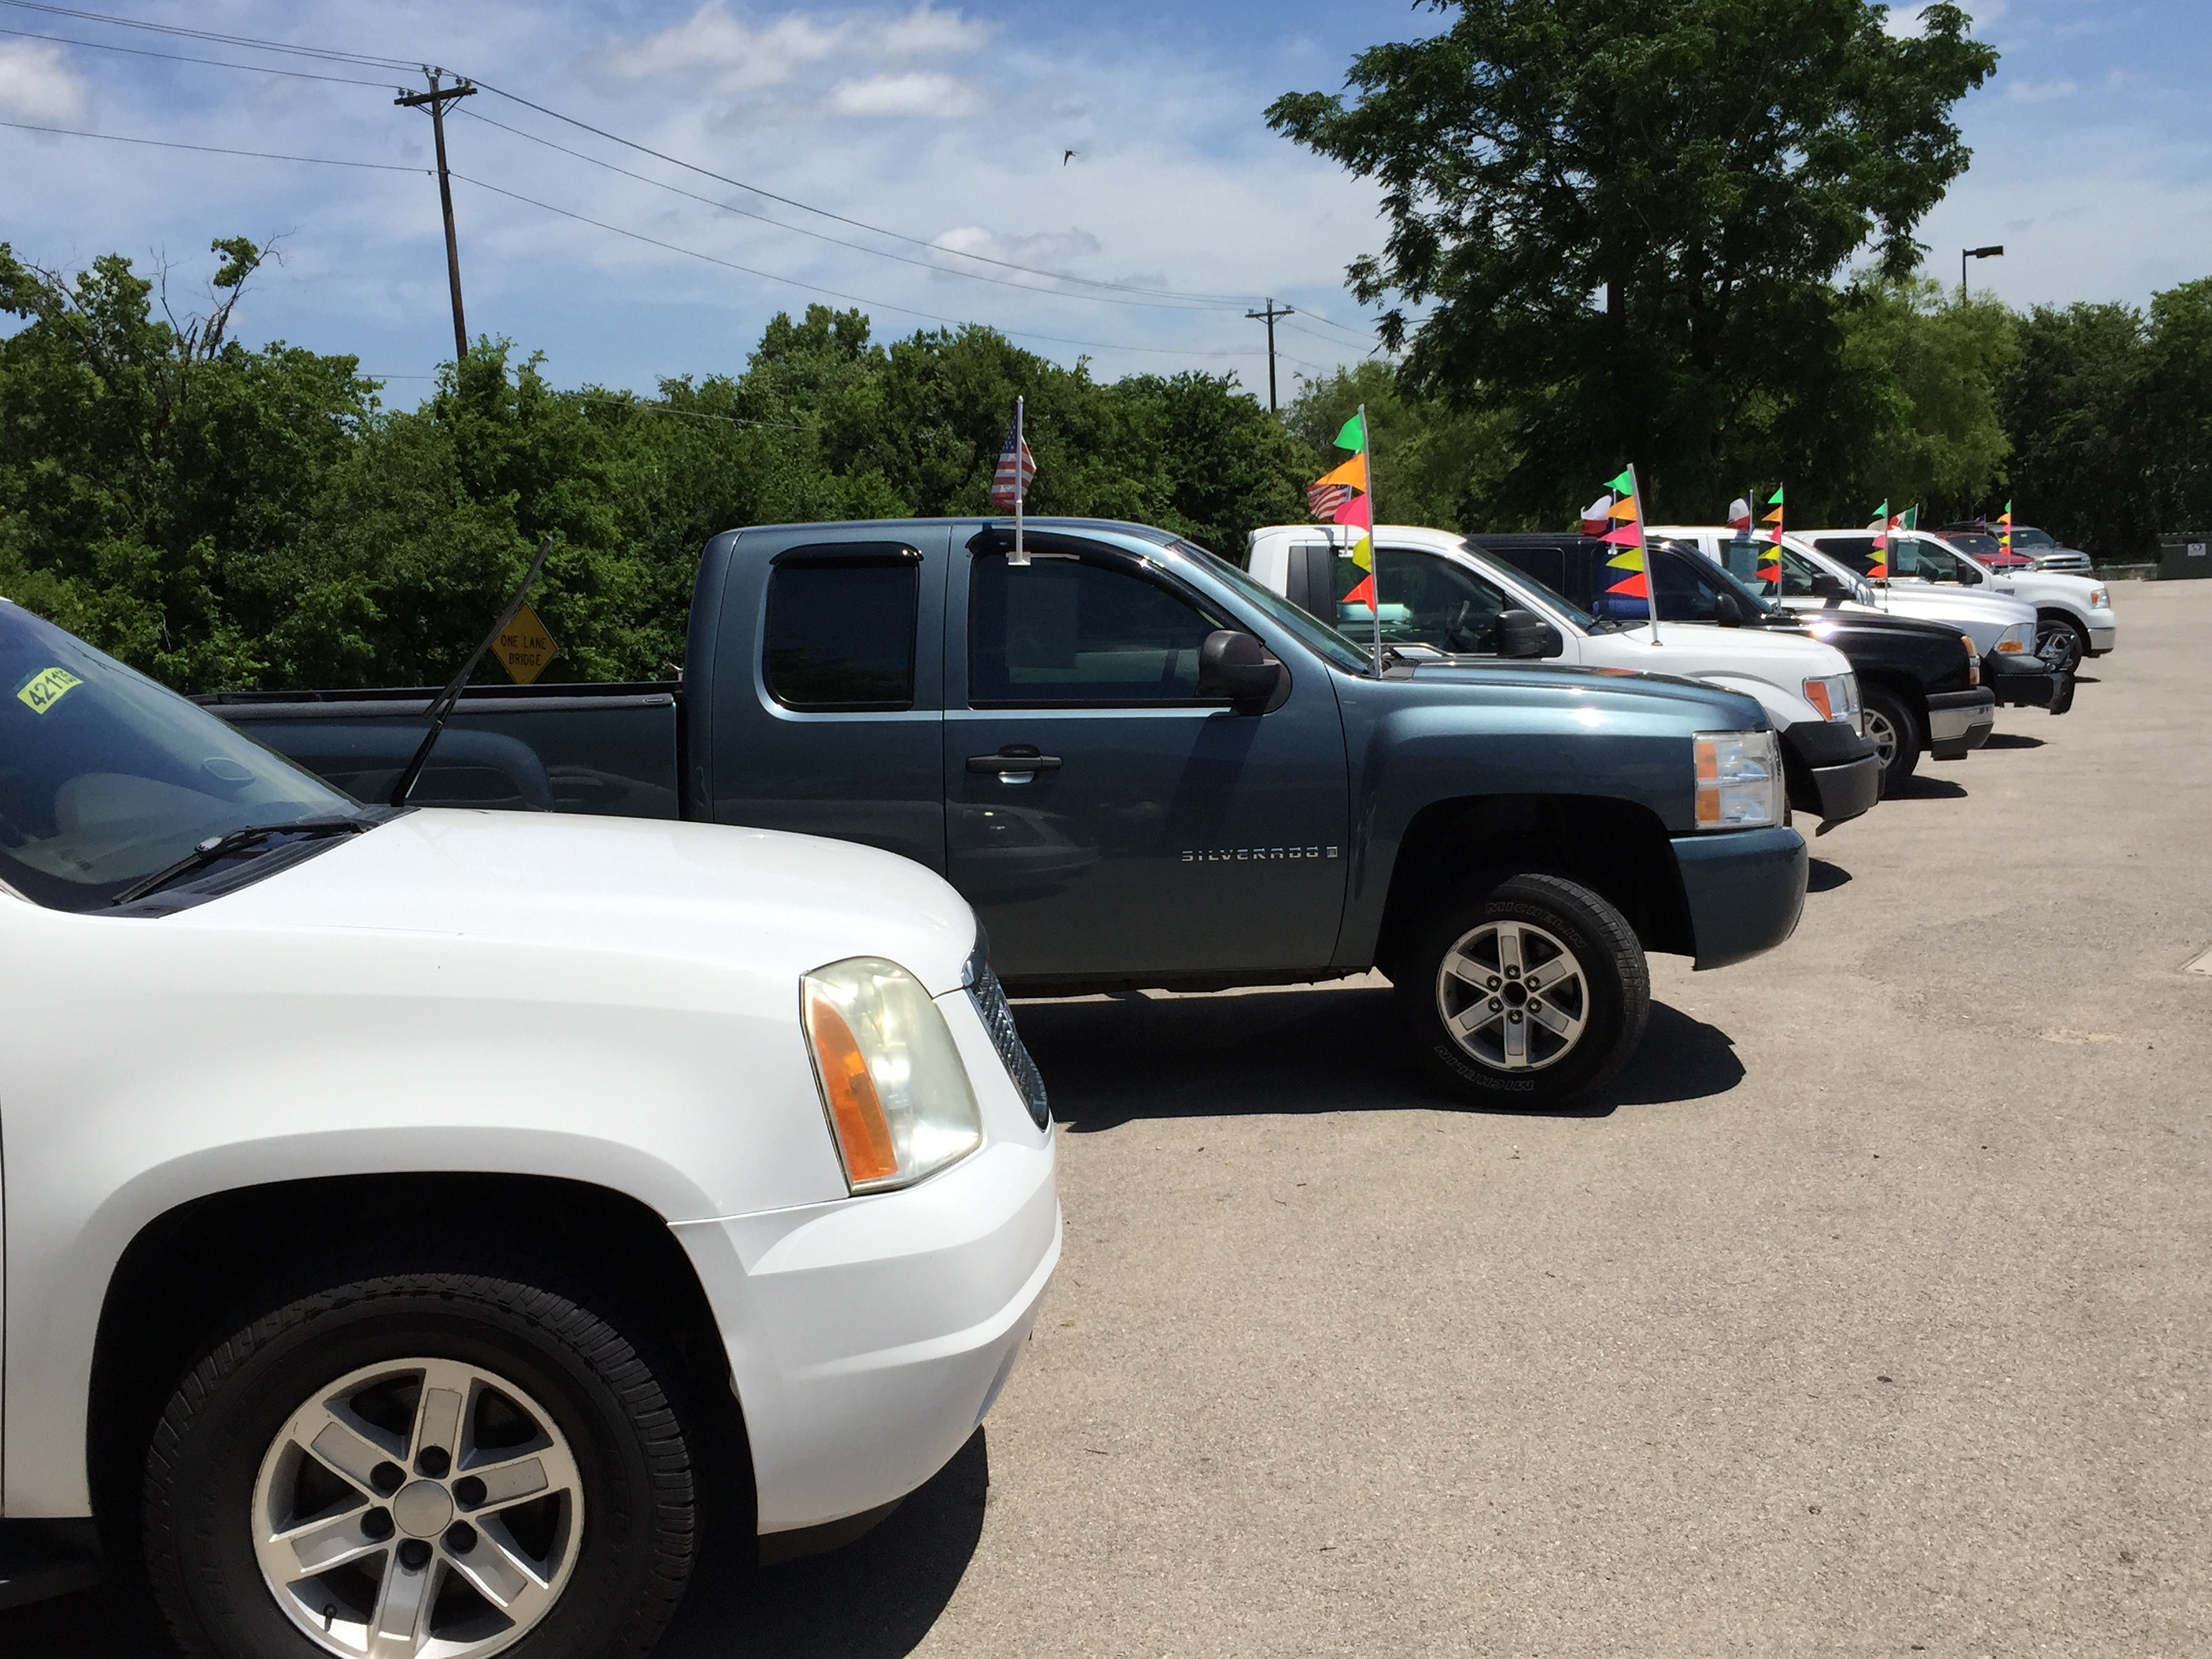 used cars austin texas